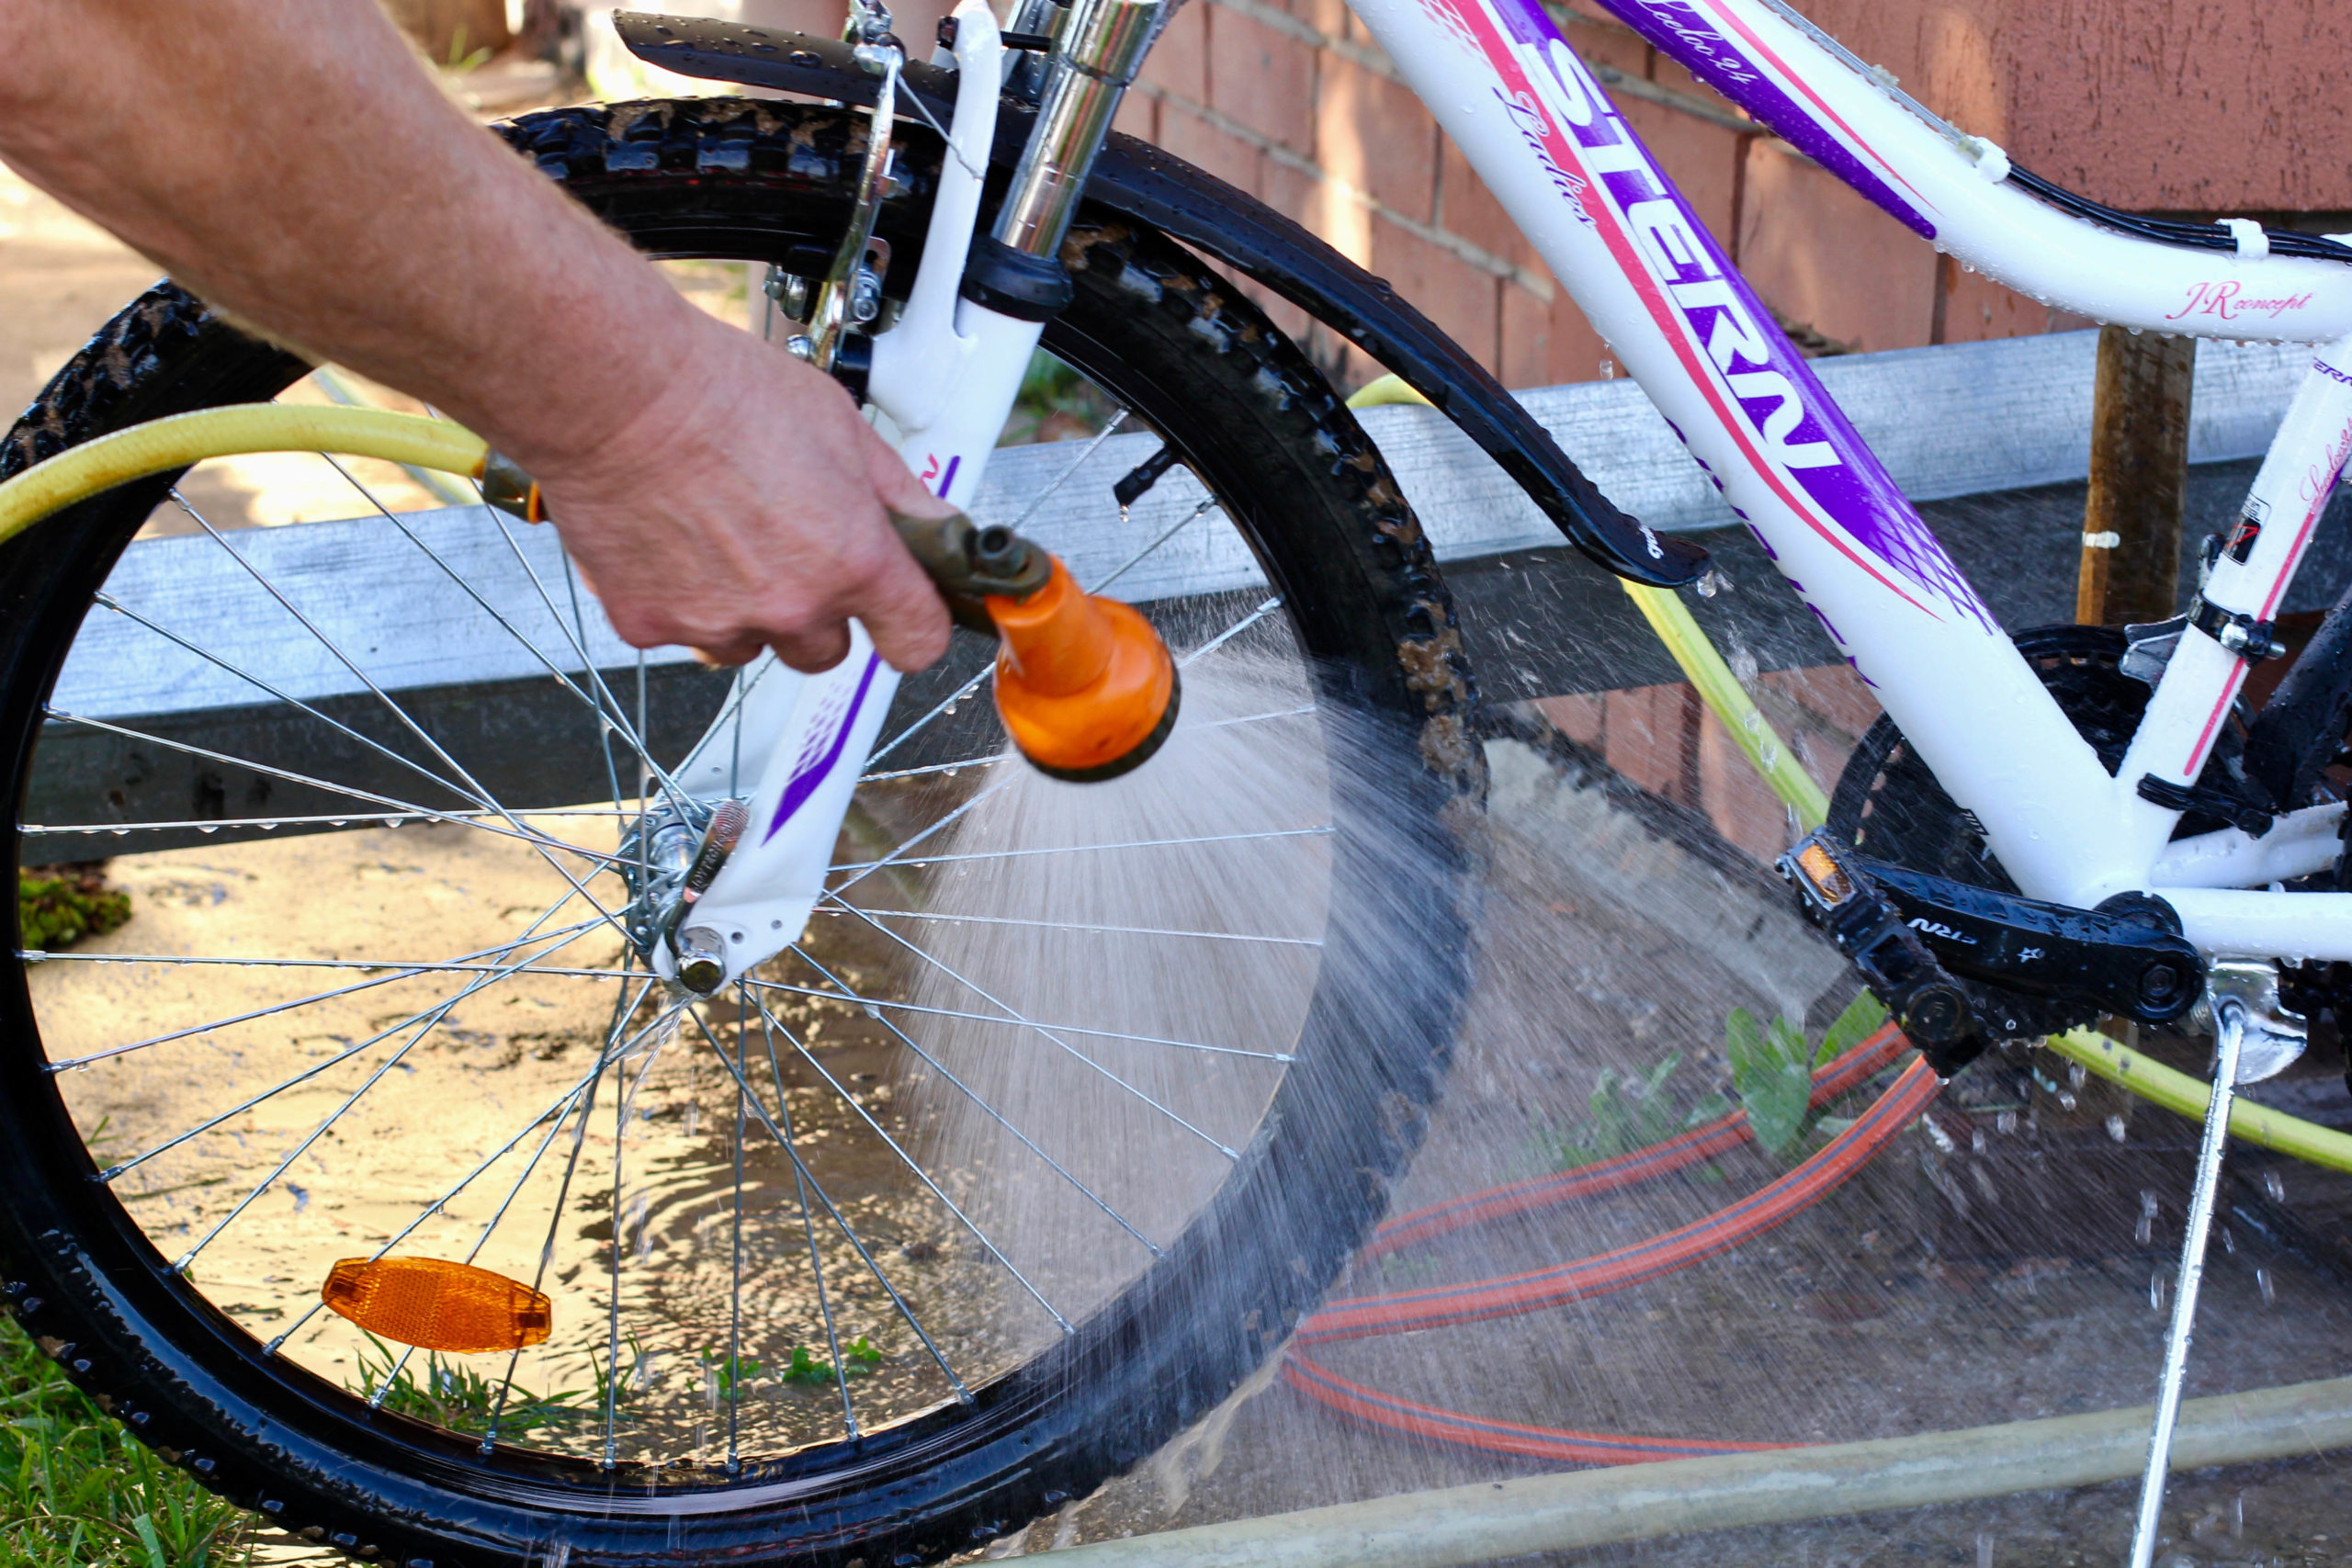 summer cleaning tips - image 3 - clean your bicycle